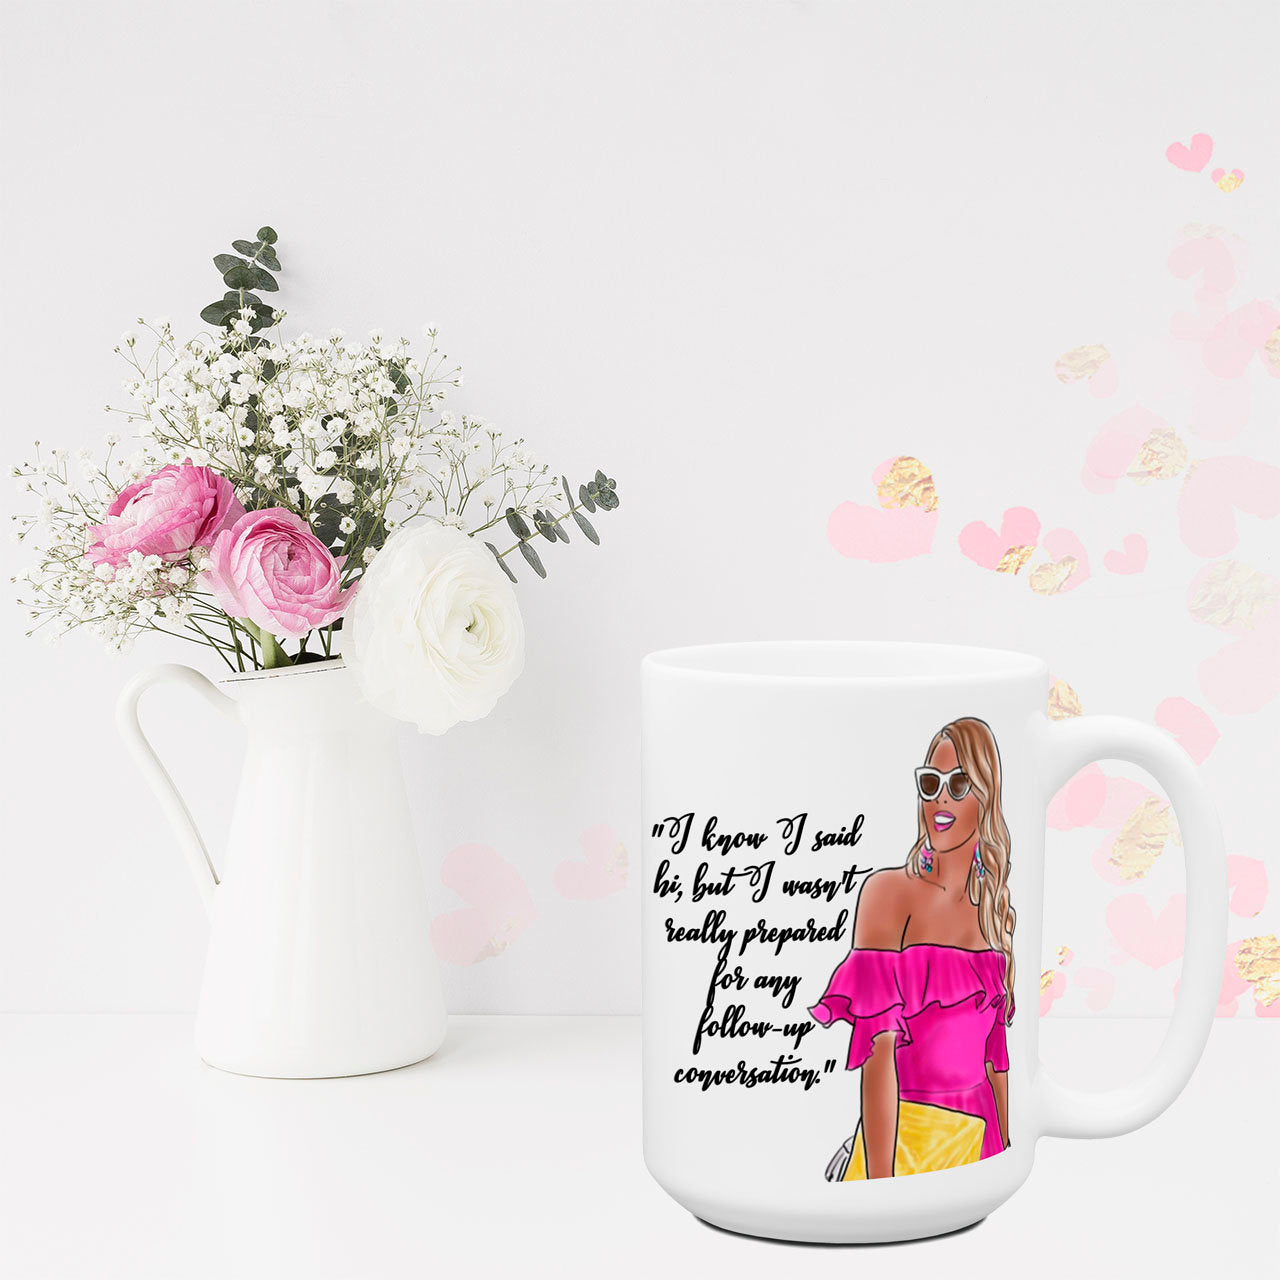 Not Prepared for Follow up Conversation Funny Coffee Mug | Office Humor Coworker Gift for Her | Work Friend